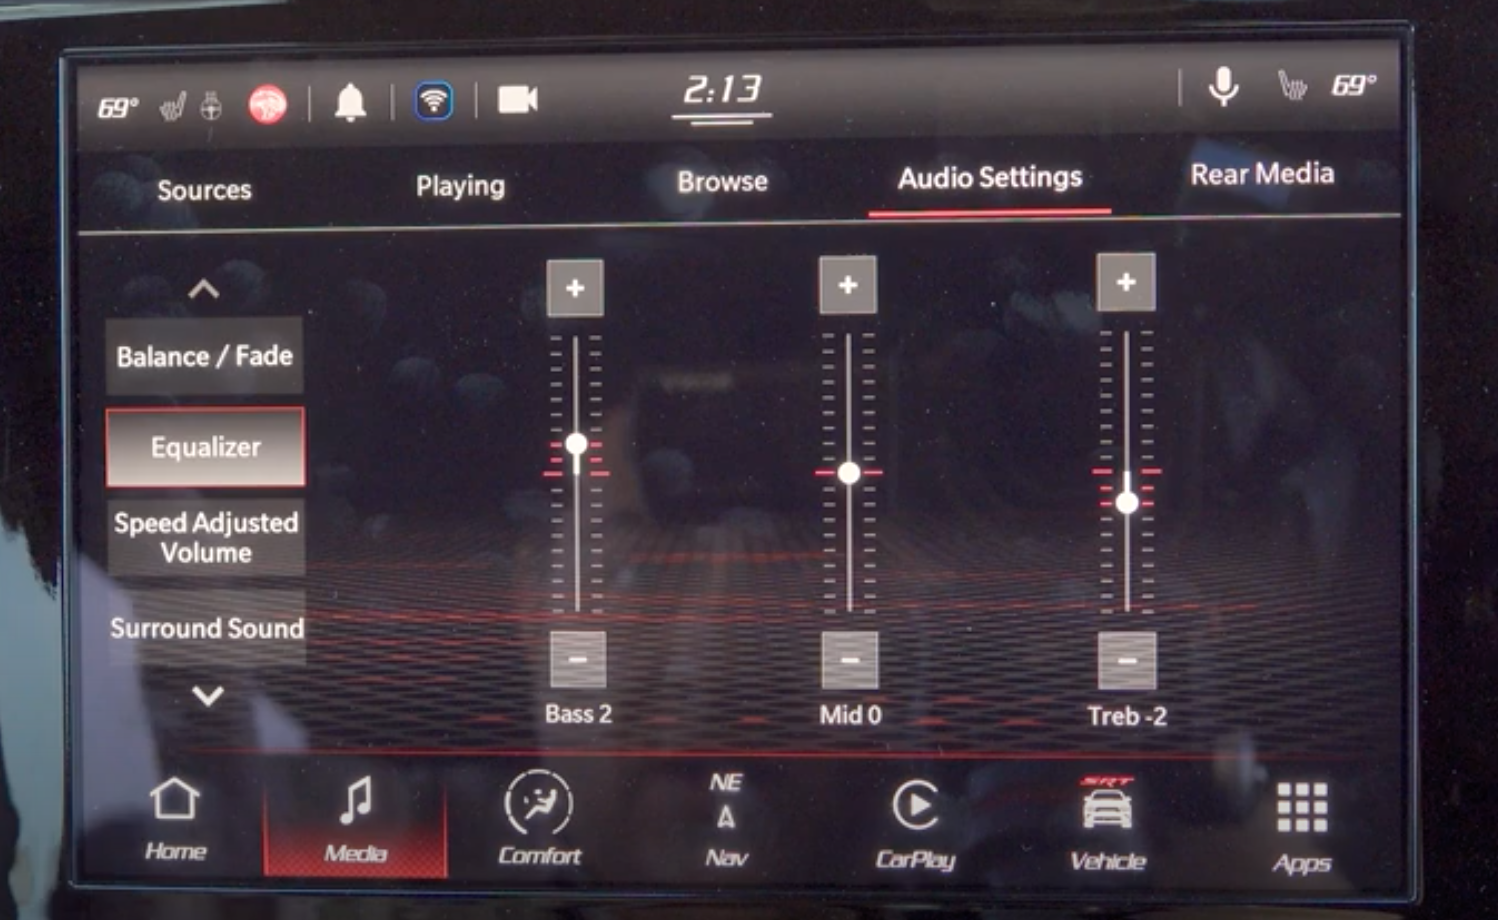 Adjusting the audio settings such as the balance and fade